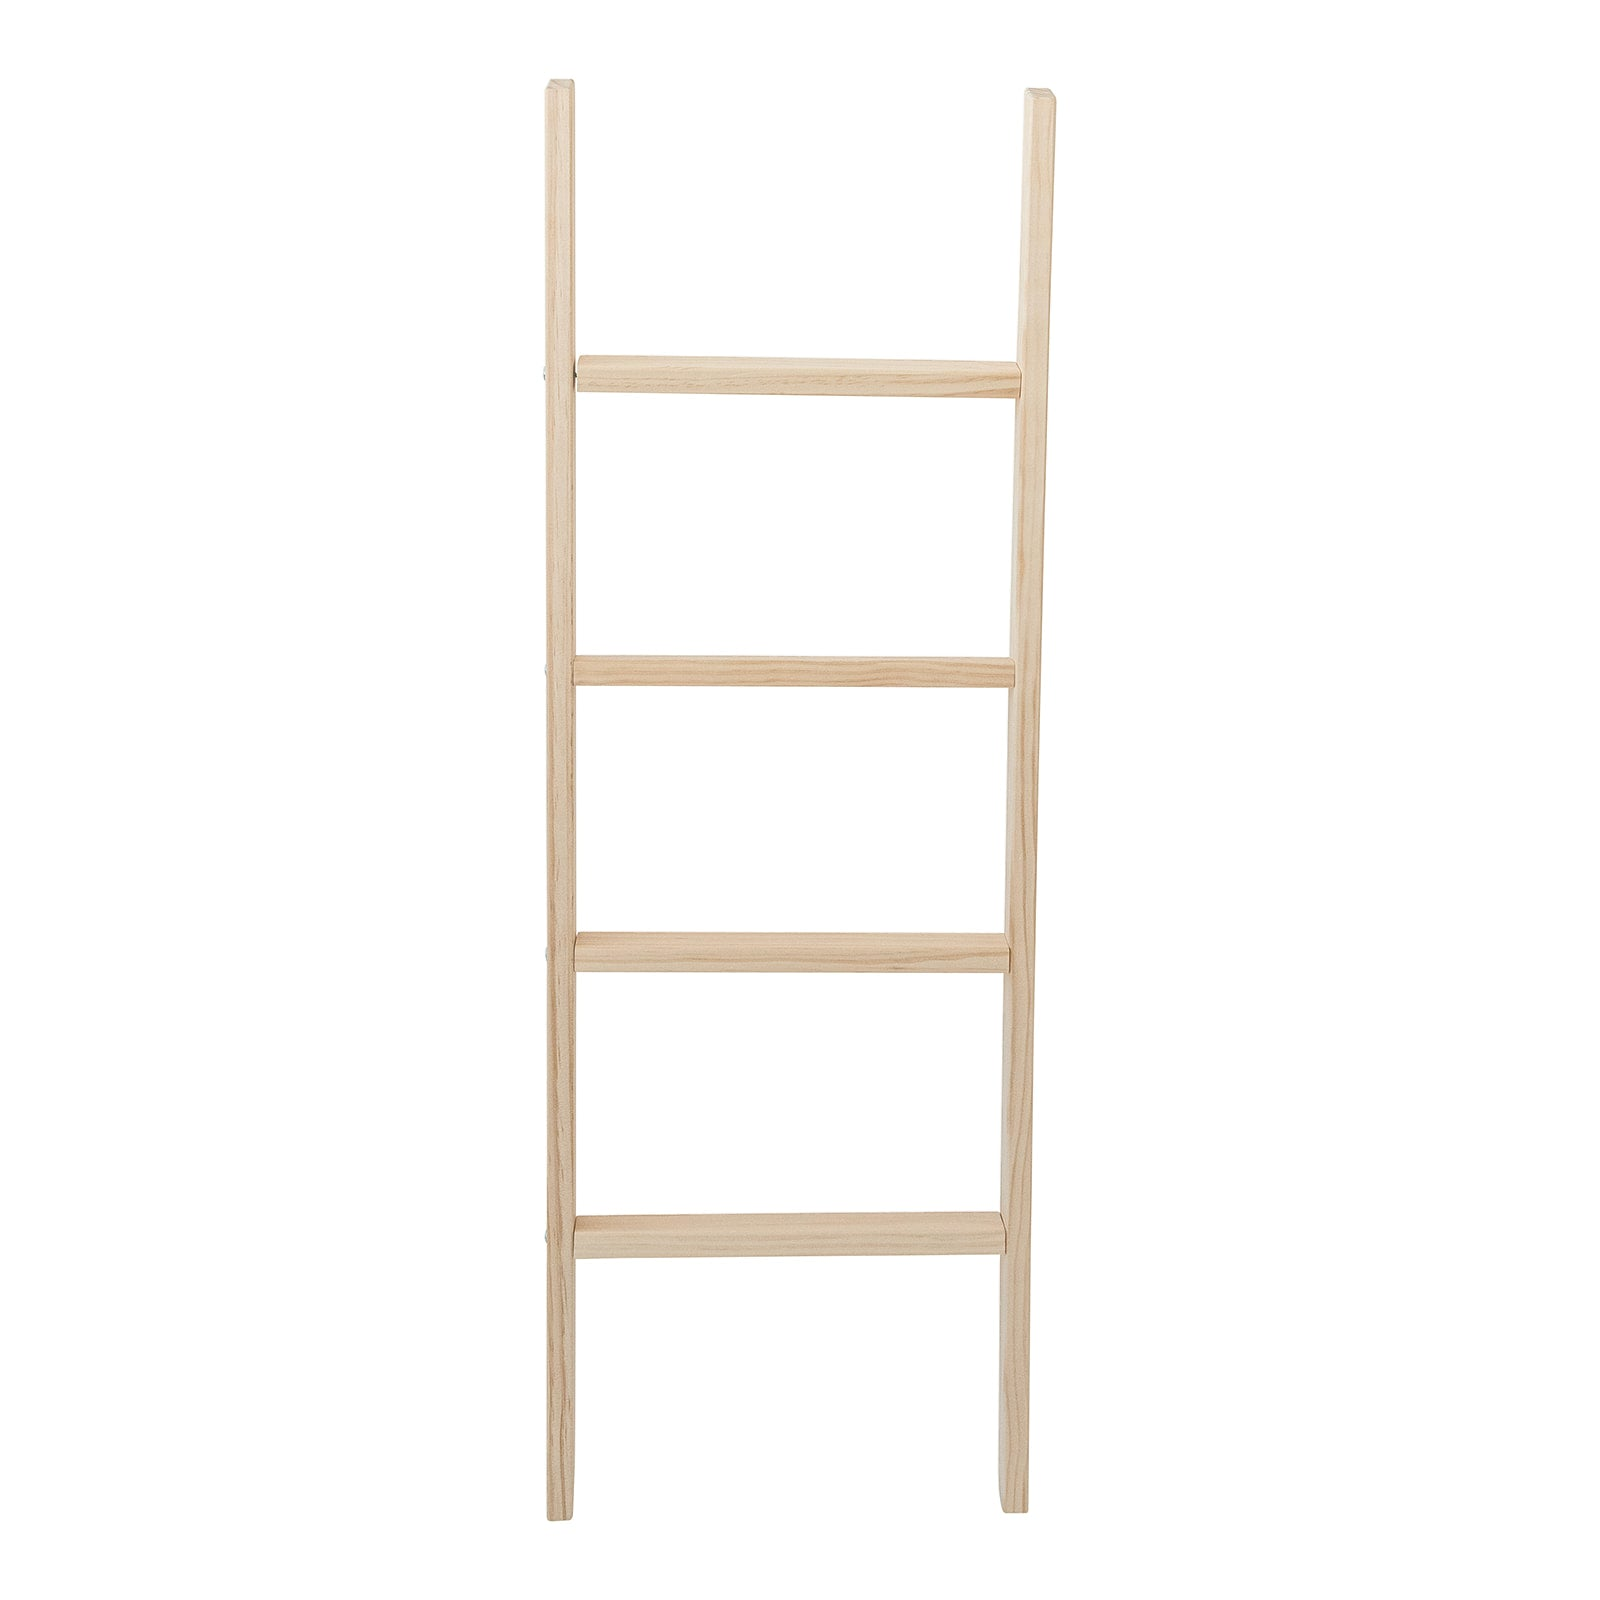 Buy online beautiful and functionable Blanket Ladder - OliveWorldCo